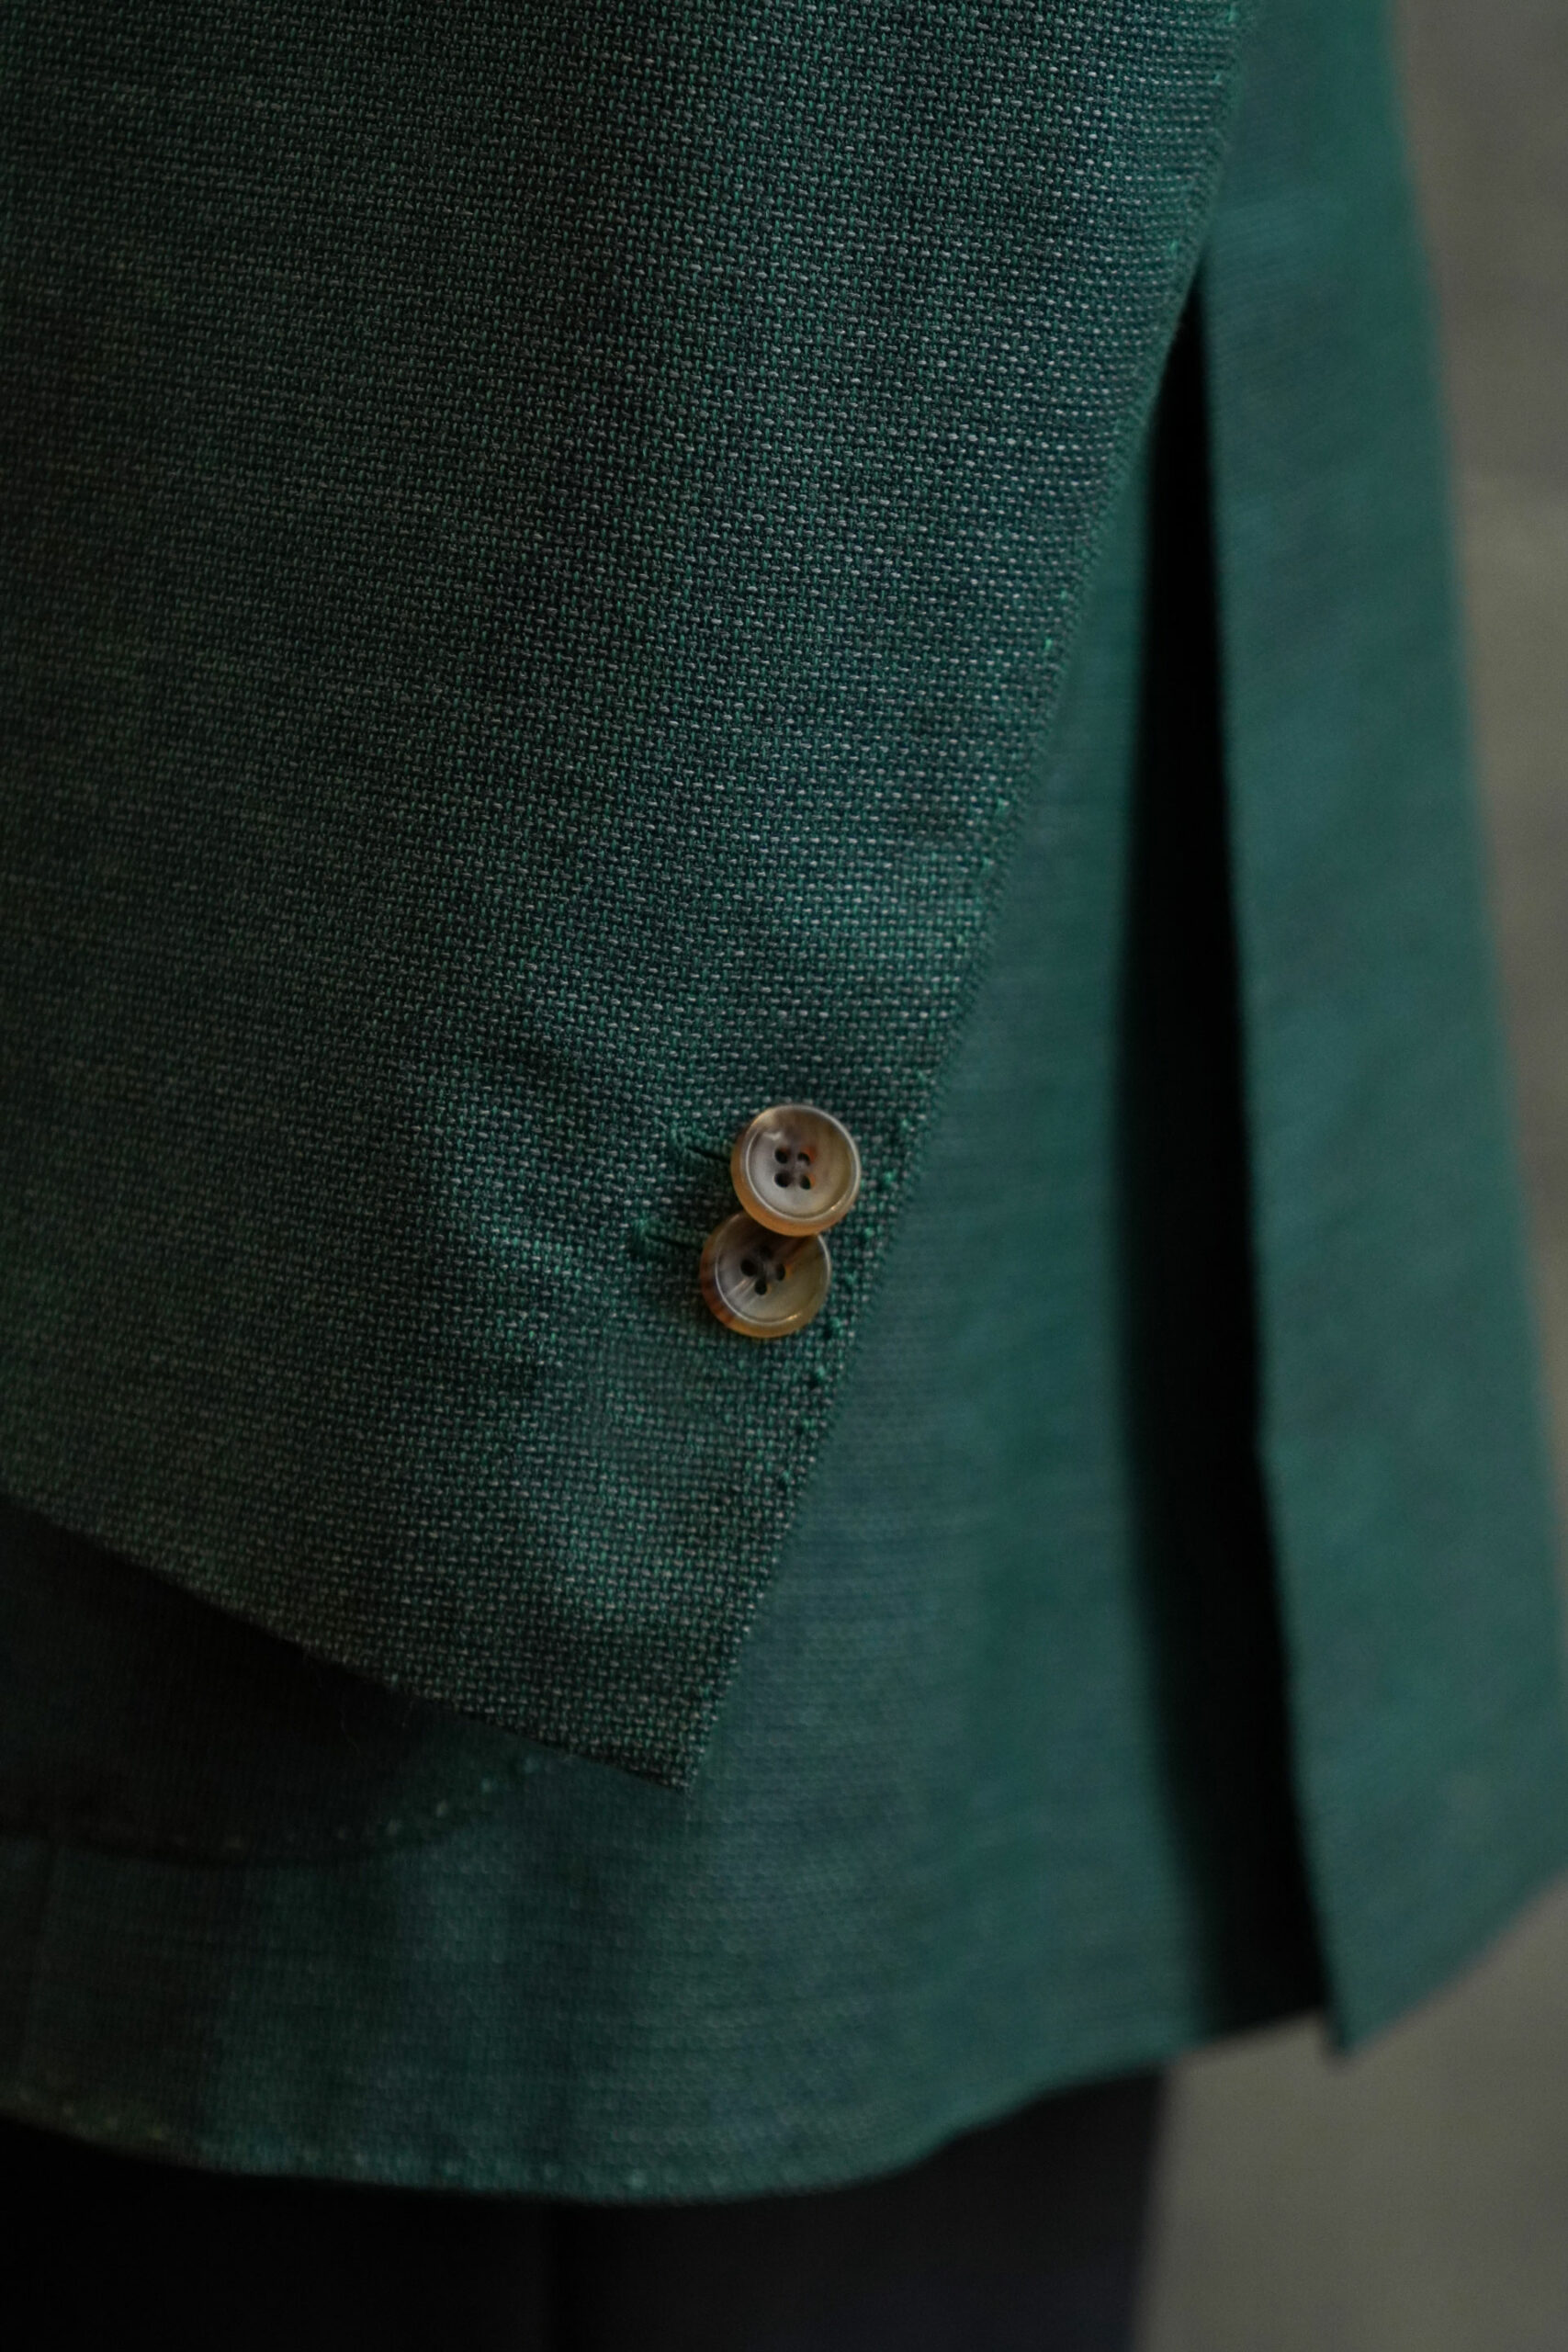 2 sleeve buttons